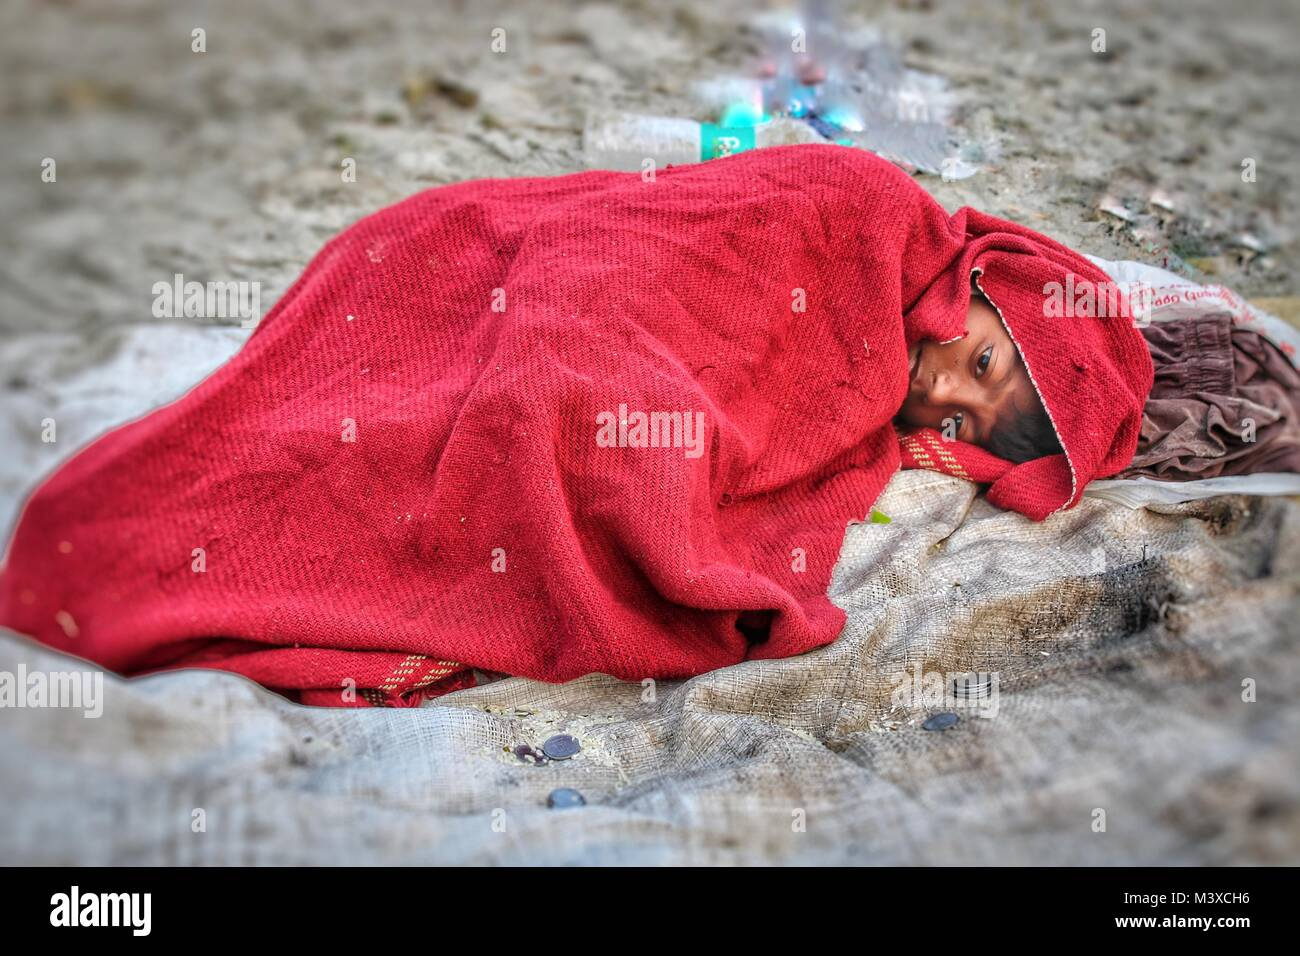 Sick Teenage Boy Lie Down At Road For Beg - Stock Image